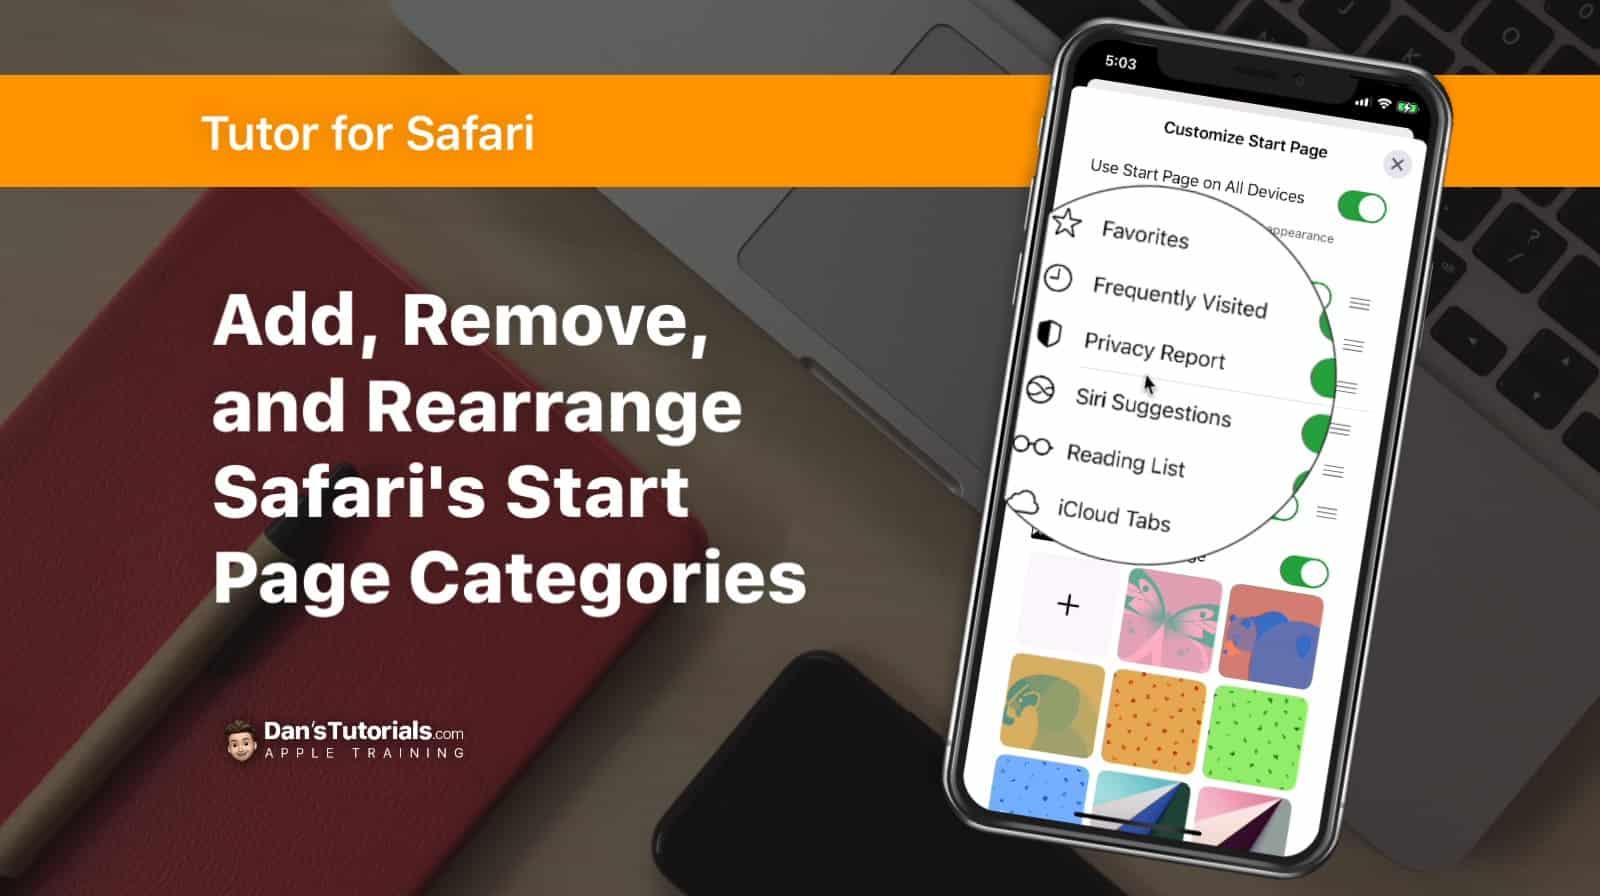 Learn how to add, remove, and rearrange Start Page categories in Safari on the iPhone